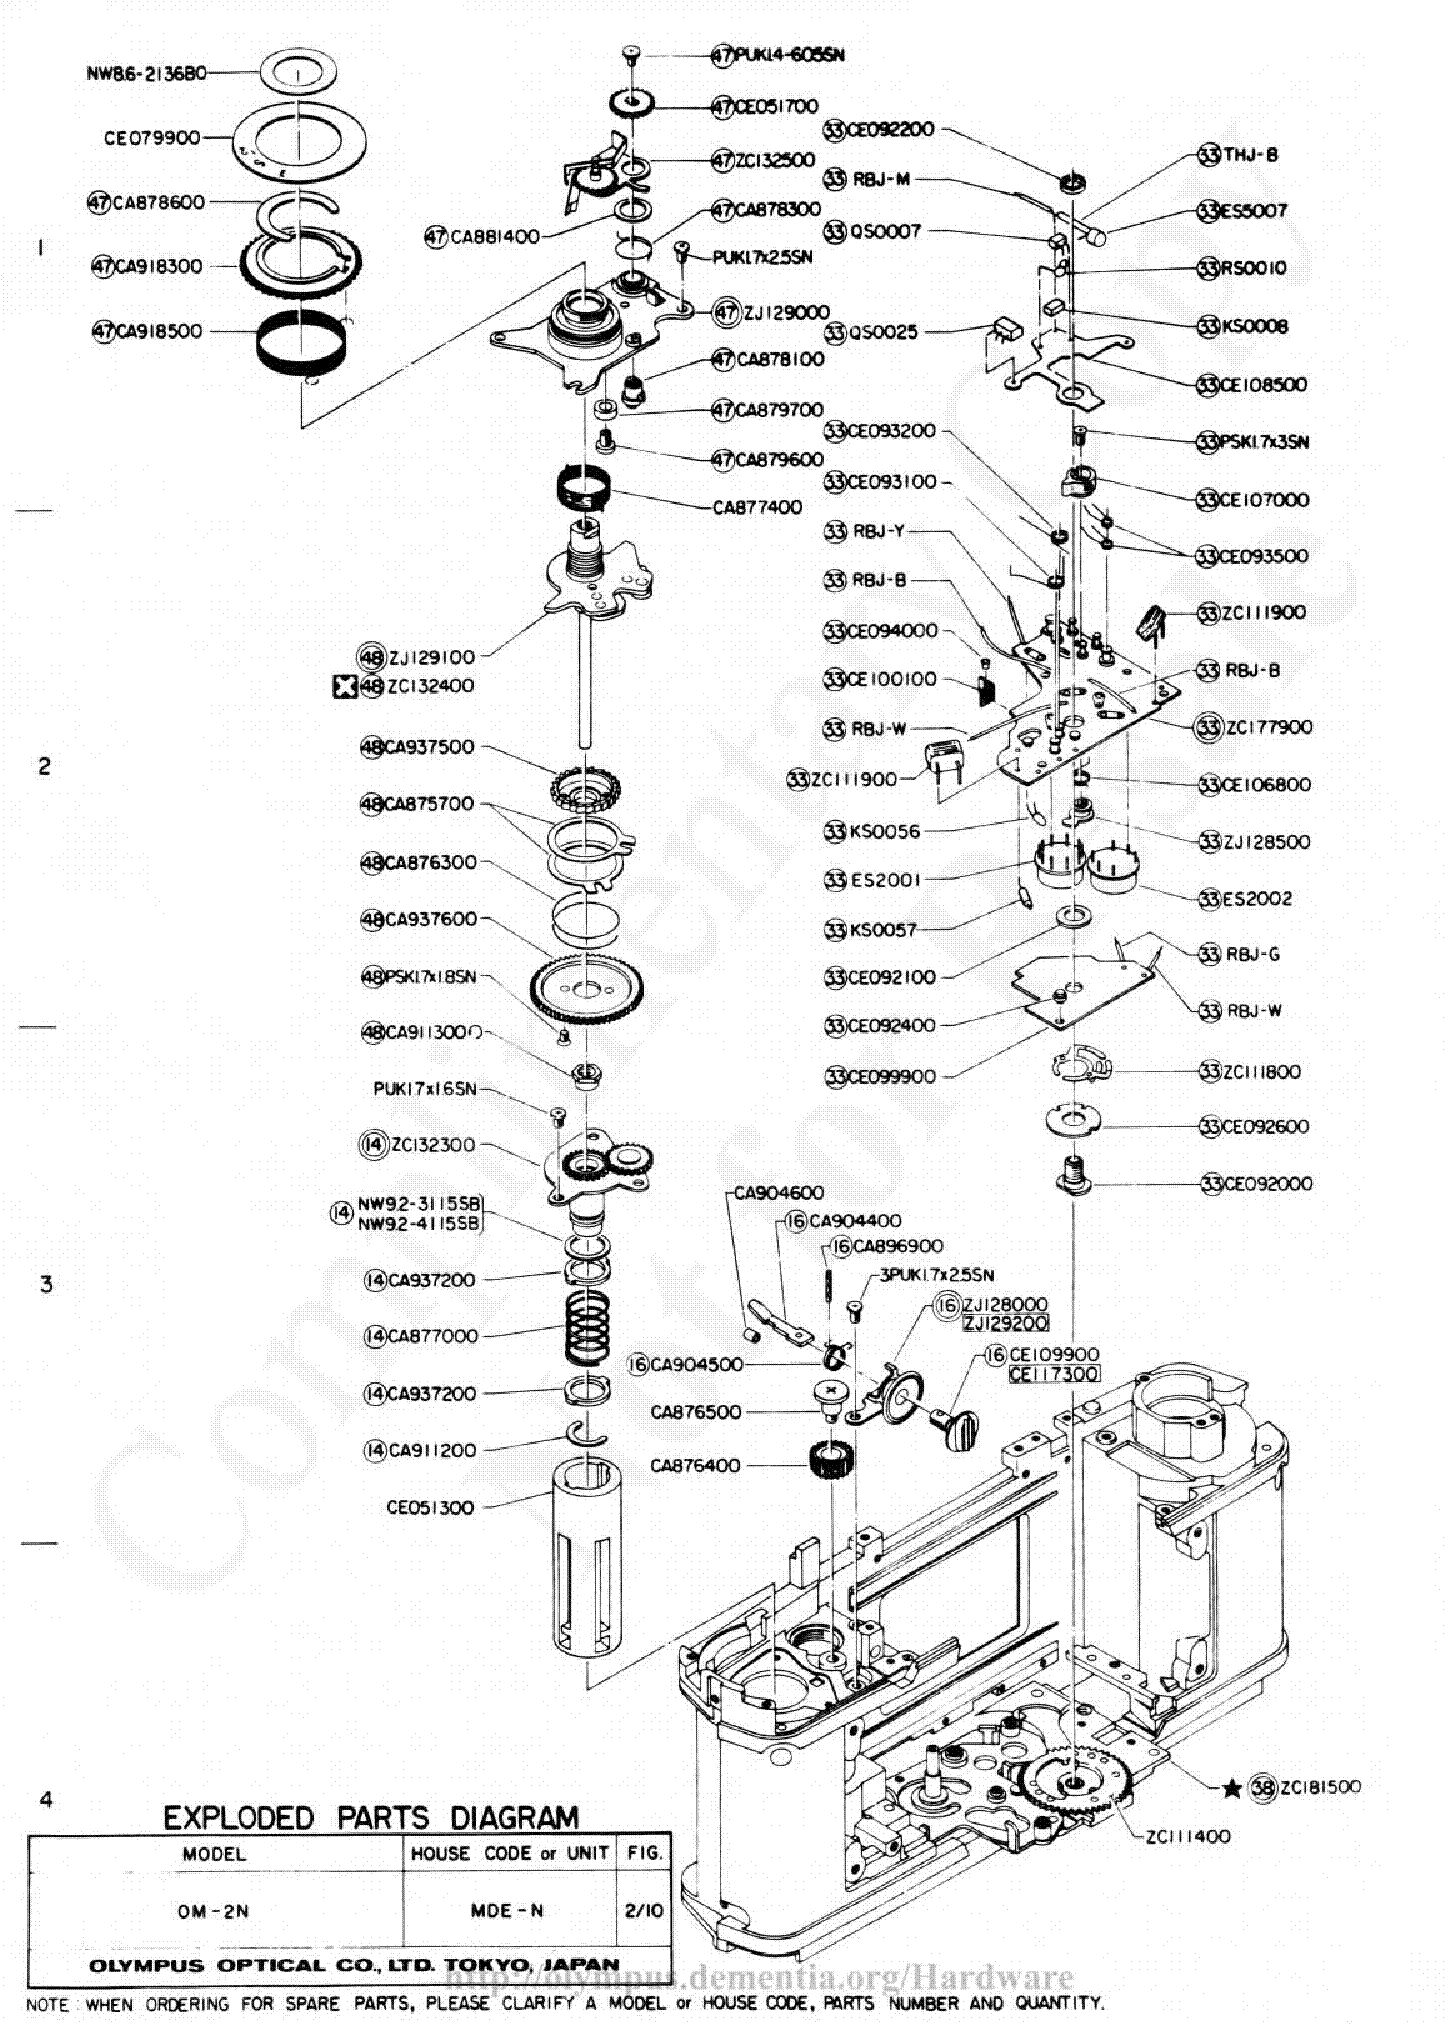 olympus om-2n exploded parts diagram service manual (2nd page)